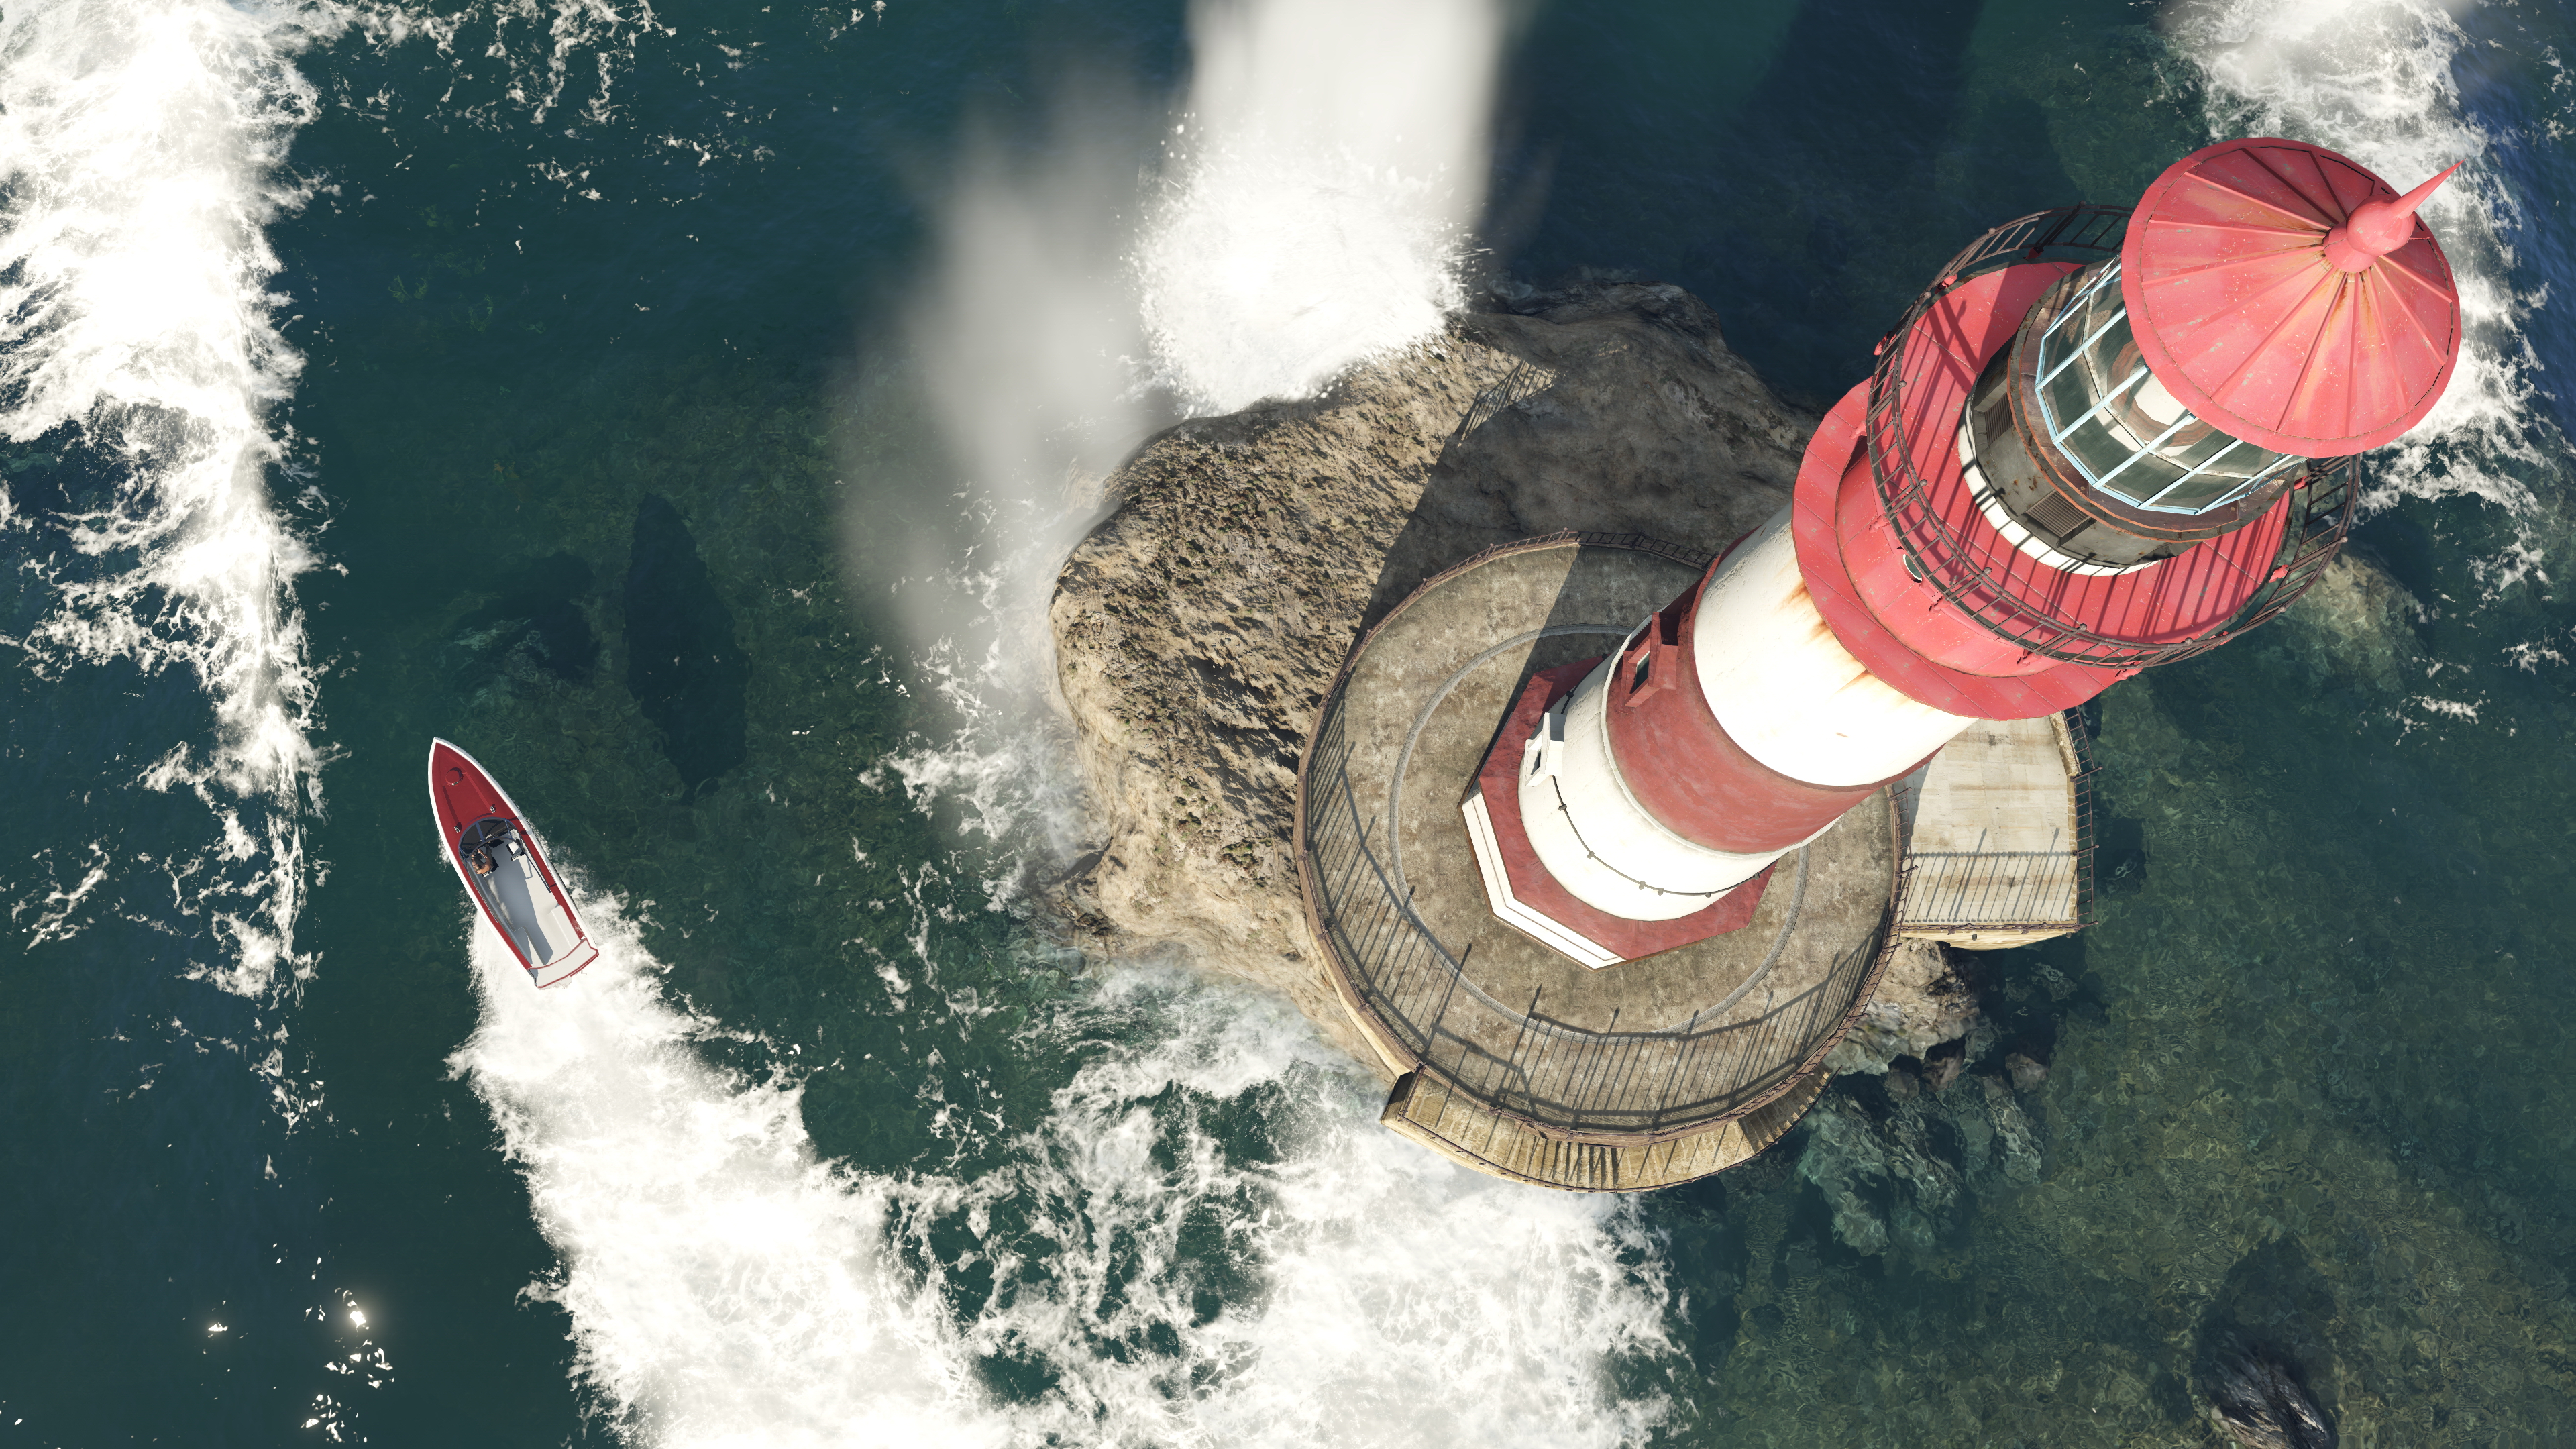 gta-v-4k-screenshot-lighthouse